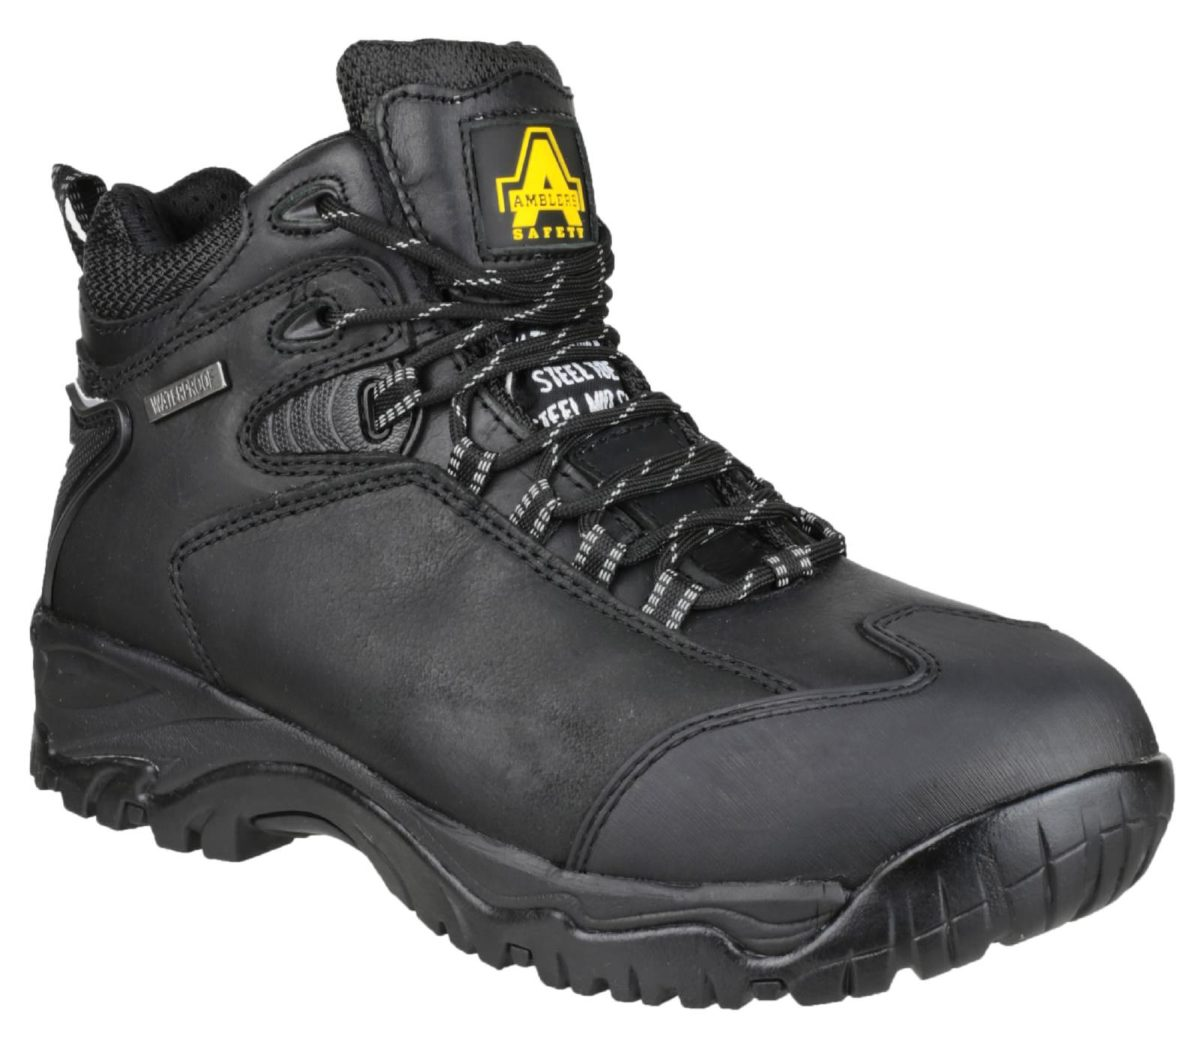 Amblers FS190n Waterproof Hiker Safety Boot